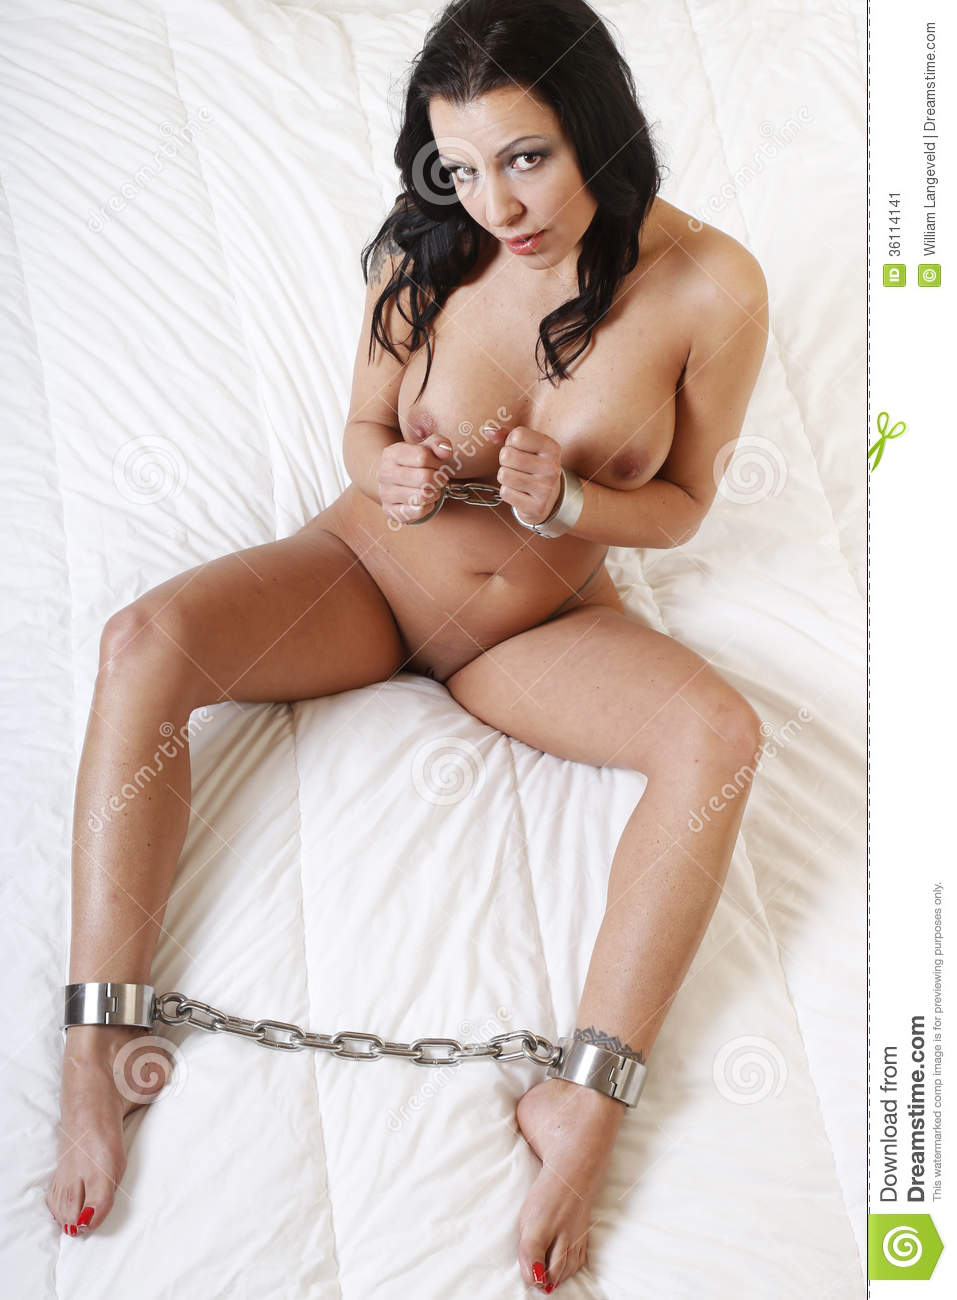 Are Girls Handcuffed Naked